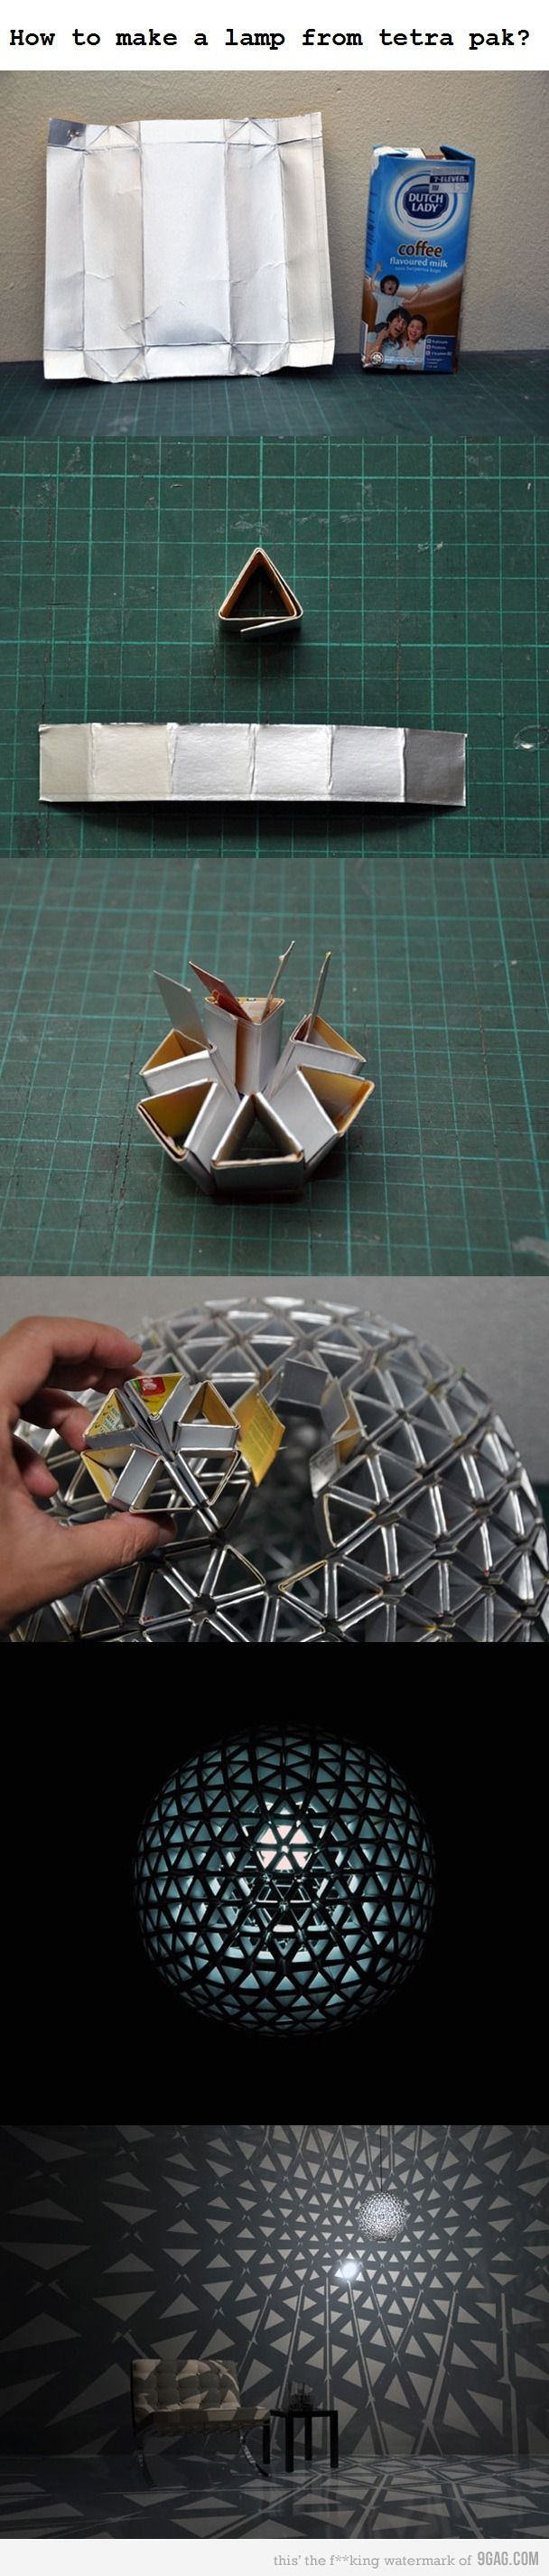 Recycled tetrapak lamp - I just don't know if I'd have the patience!